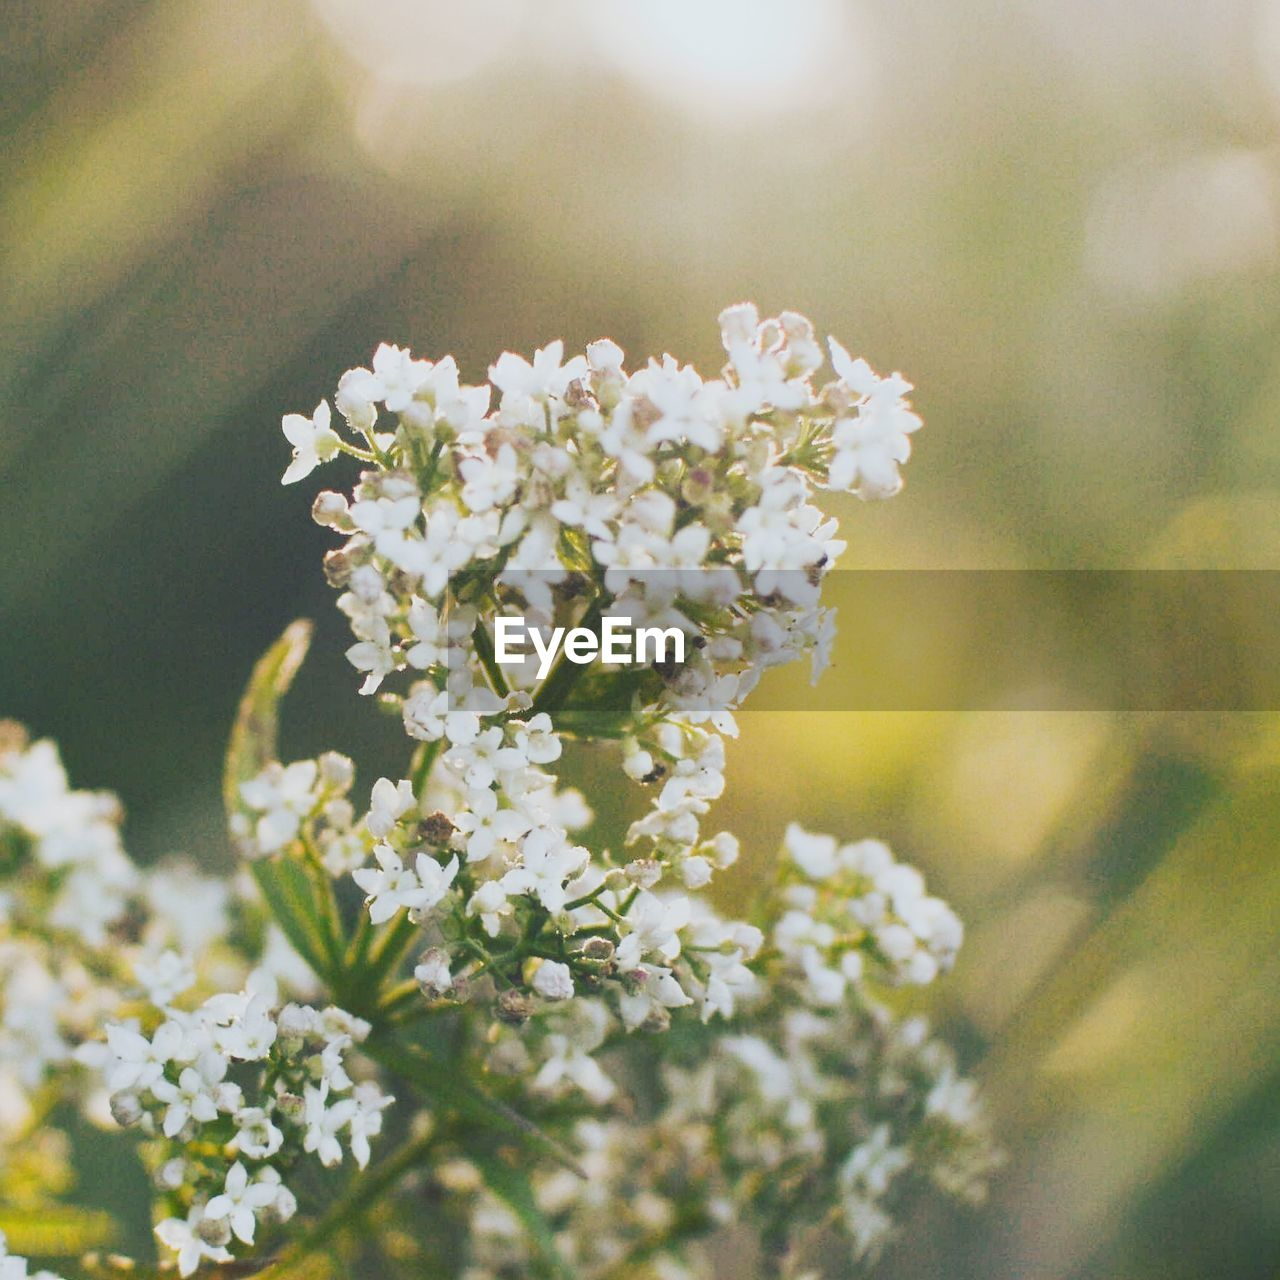 flower, flowering plant, plant, beauty in nature, vulnerability, fragility, freshness, close-up, growth, selective focus, day, nature, white color, no people, petal, flower head, focus on foreground, inflorescence, outdoors, tranquility